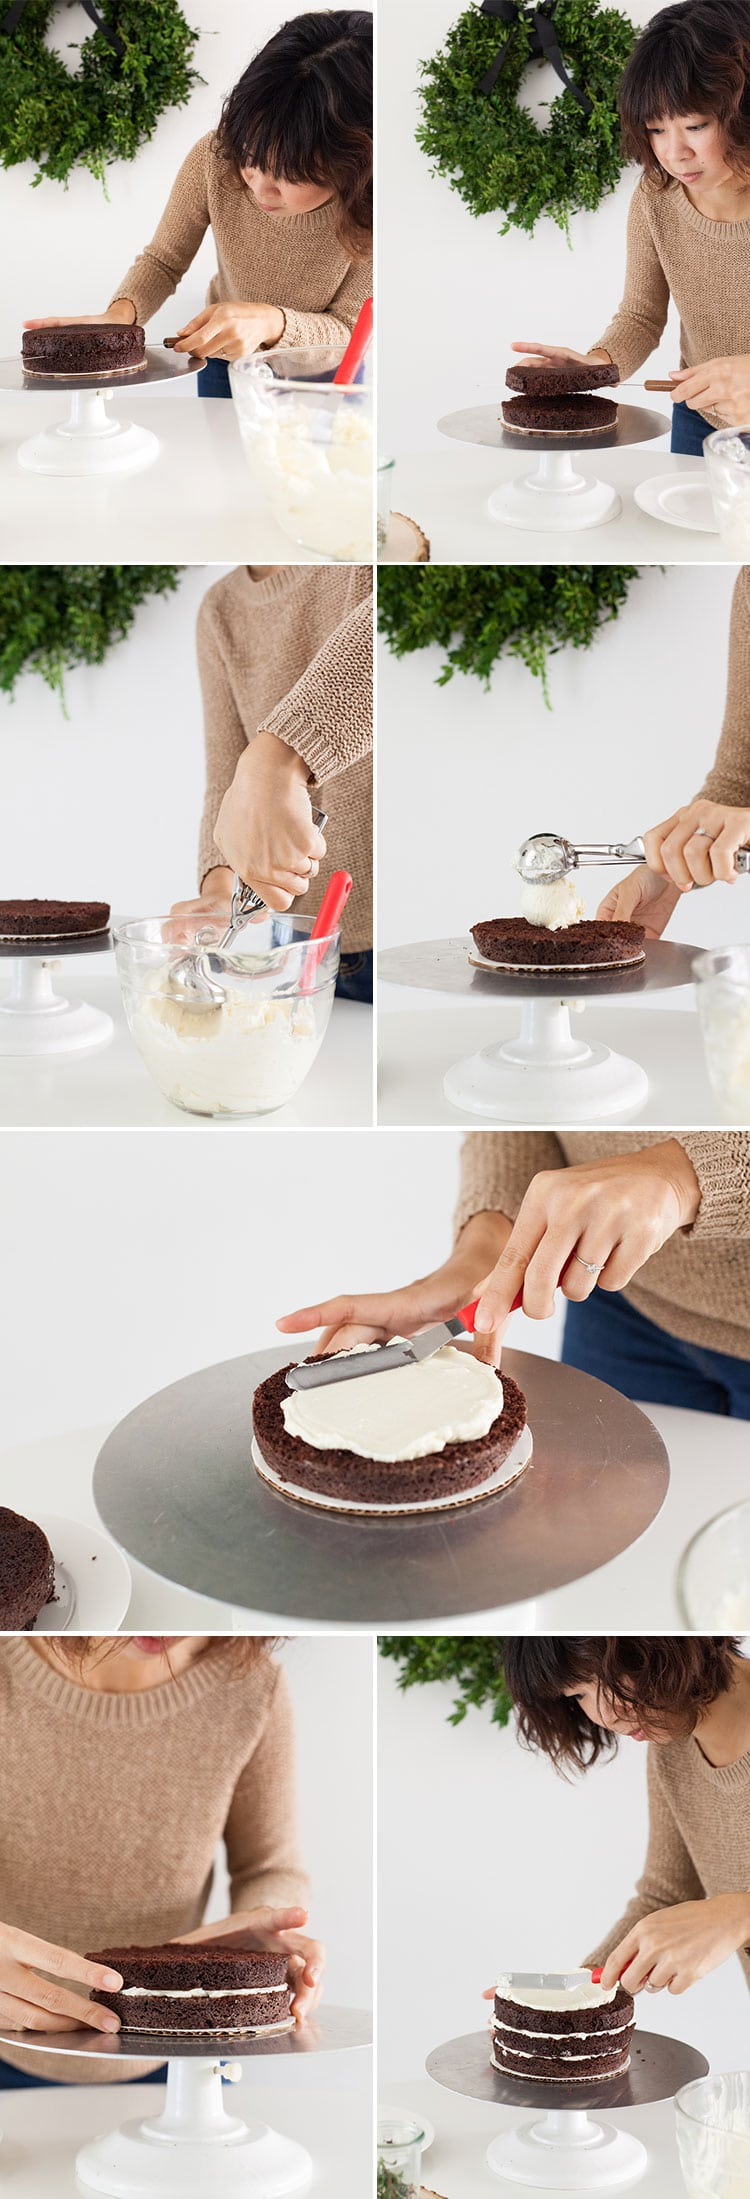 How Decorate Cake At Home : How to: Decorate a Winter Cake